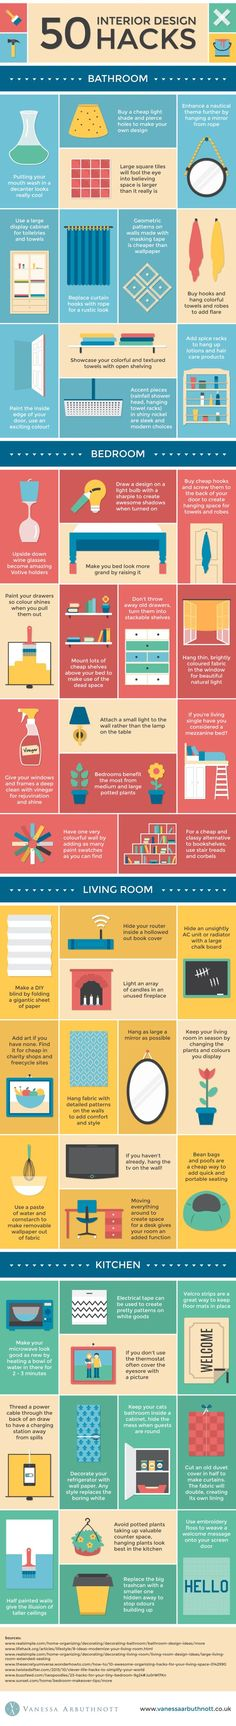 50 Interior Design Hacks #Infographic #InteriorDesign #Design